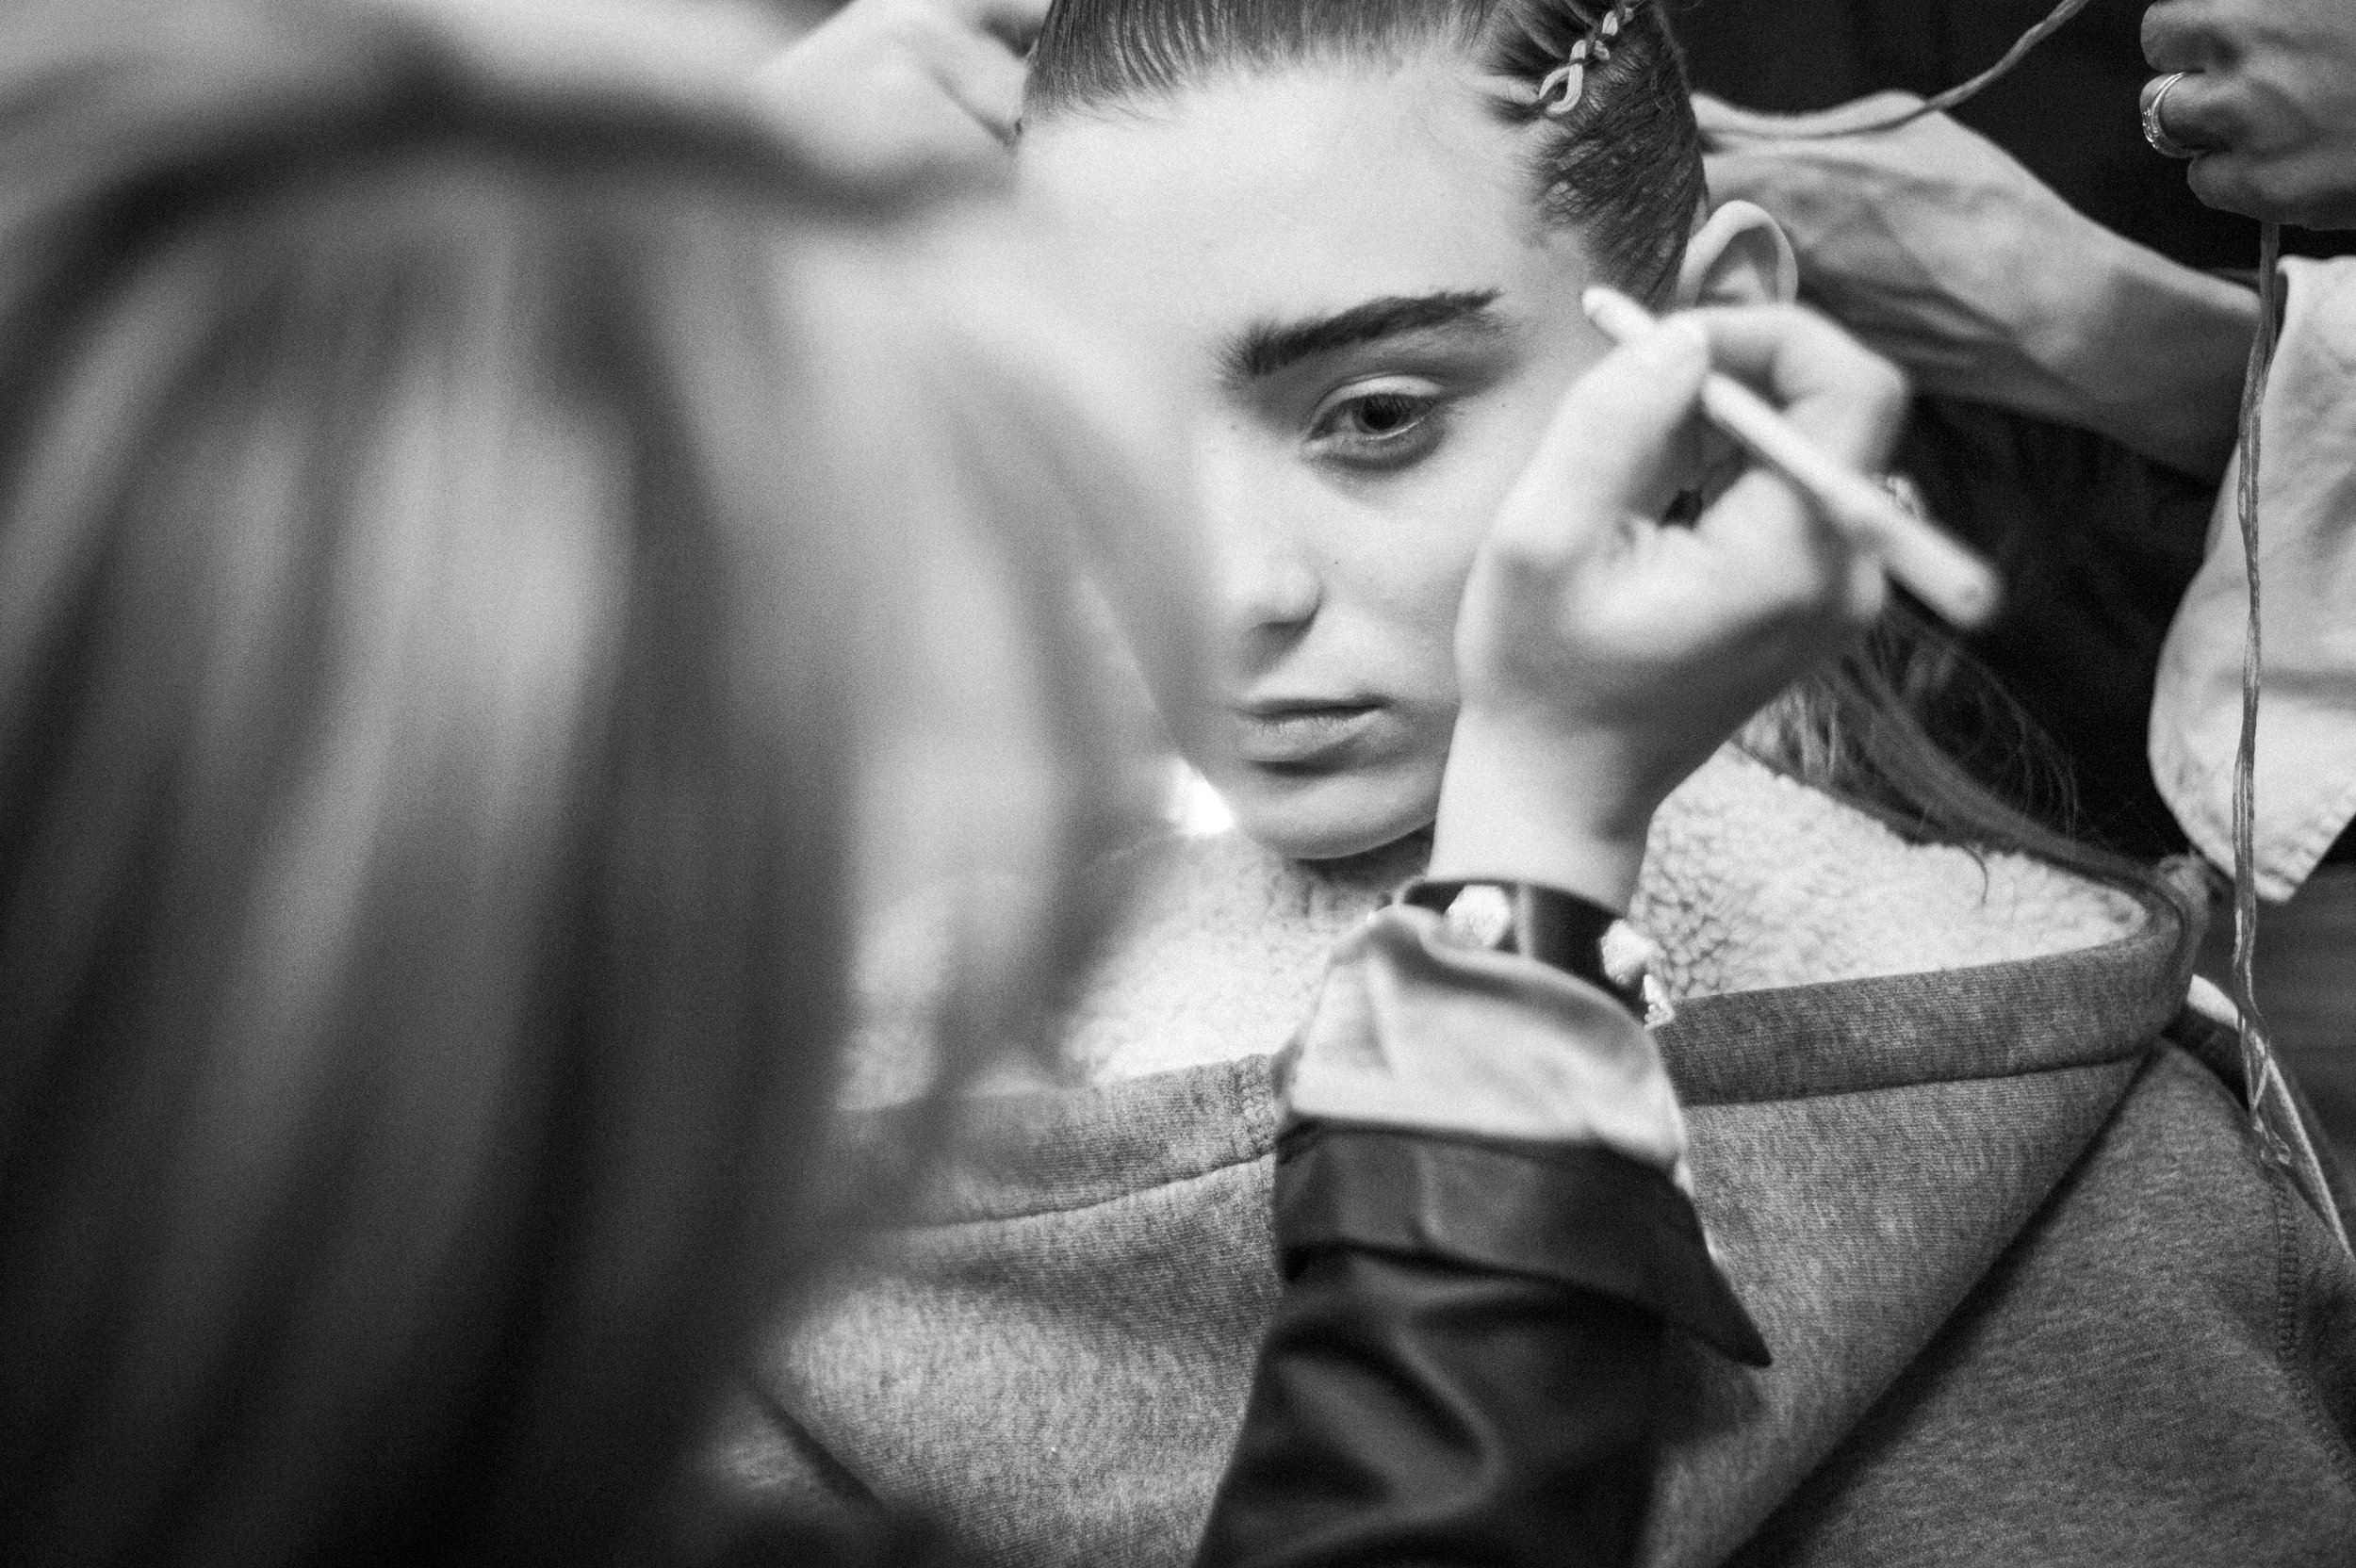 Carolina Thaler from Elite Models, backstage at the Fall 2014 show.